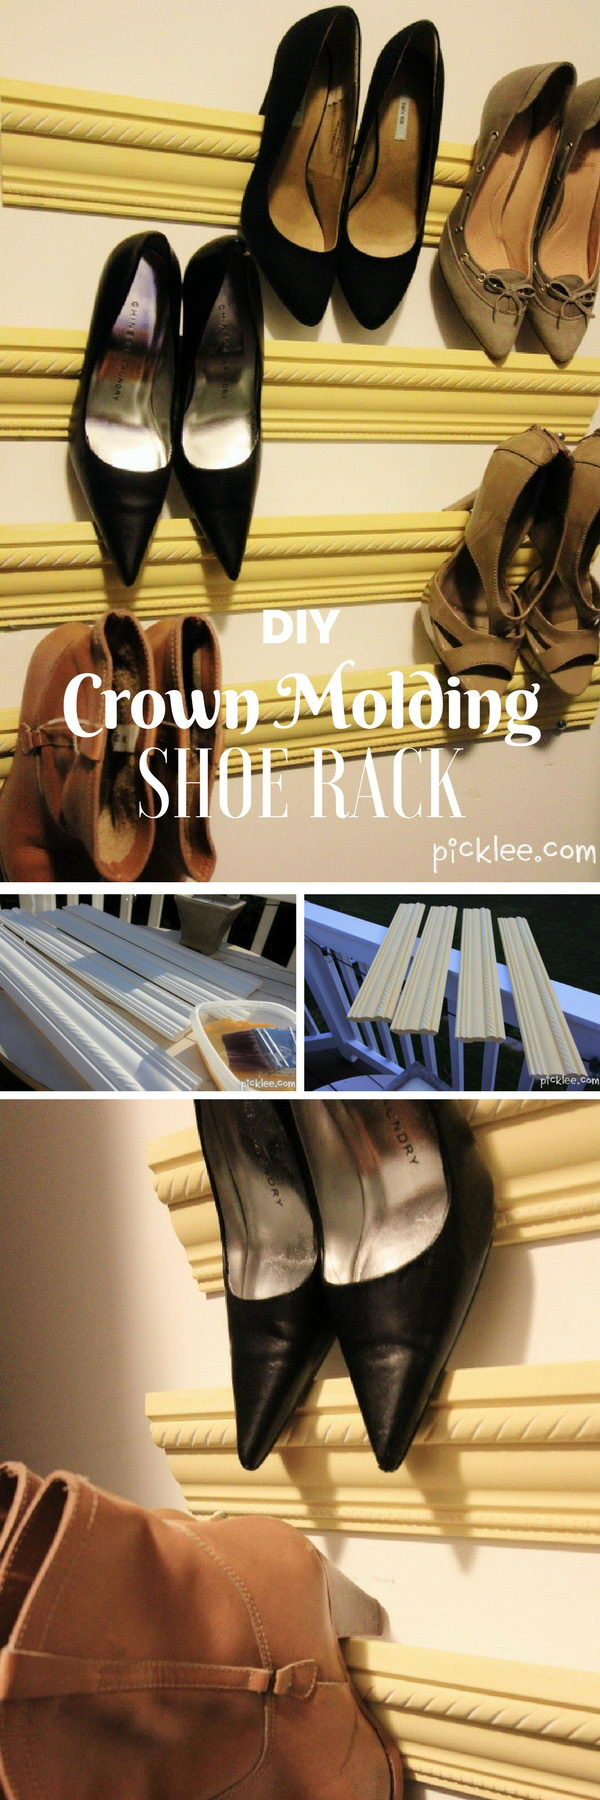 Crown Molding Shoe Rack.